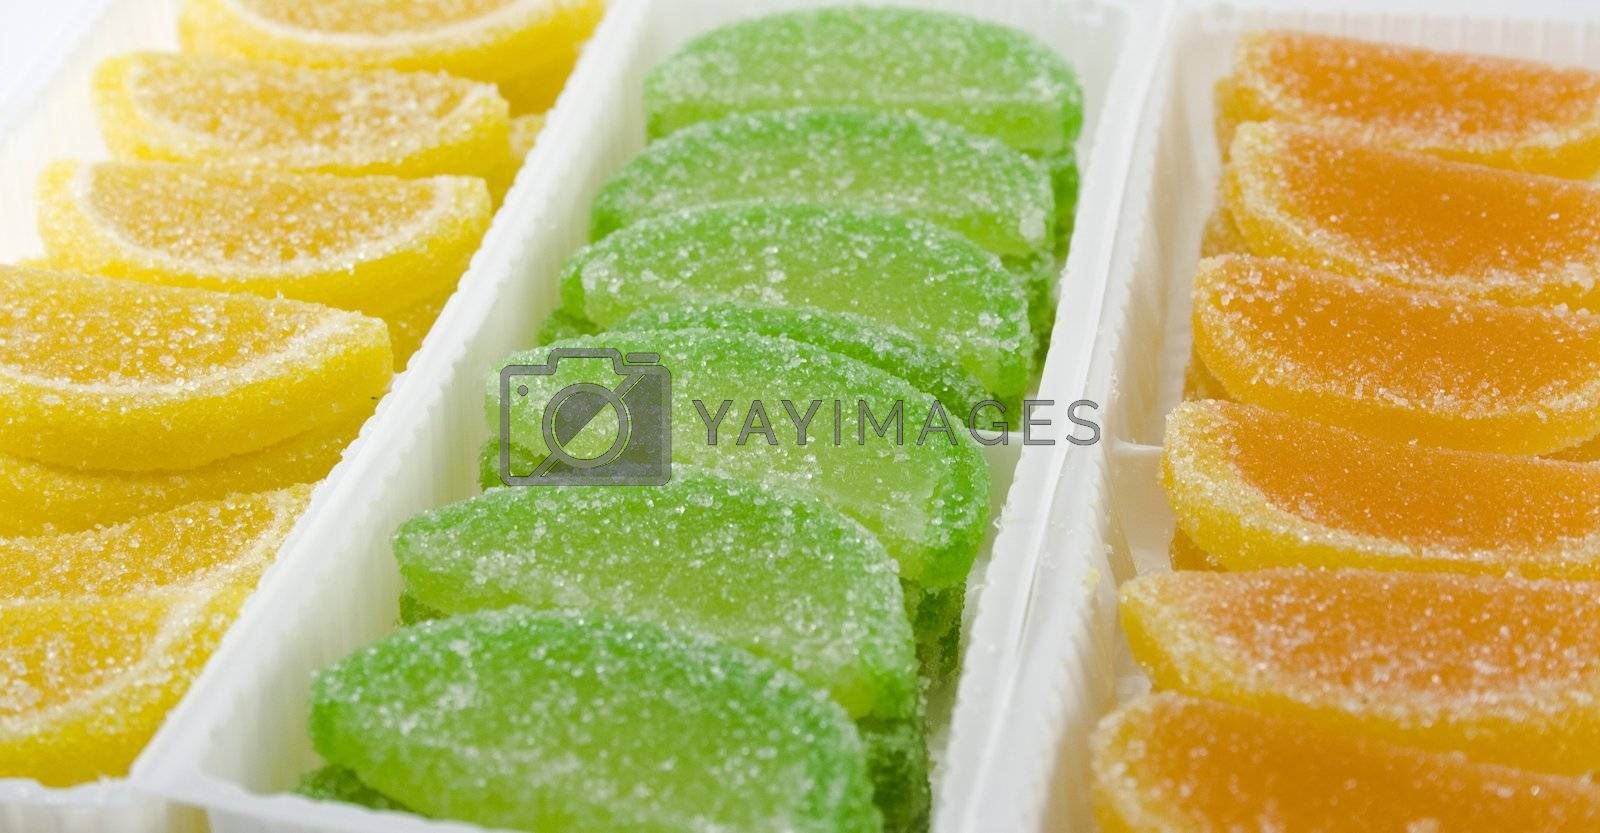 close-up of colourful fruit candies in boxes